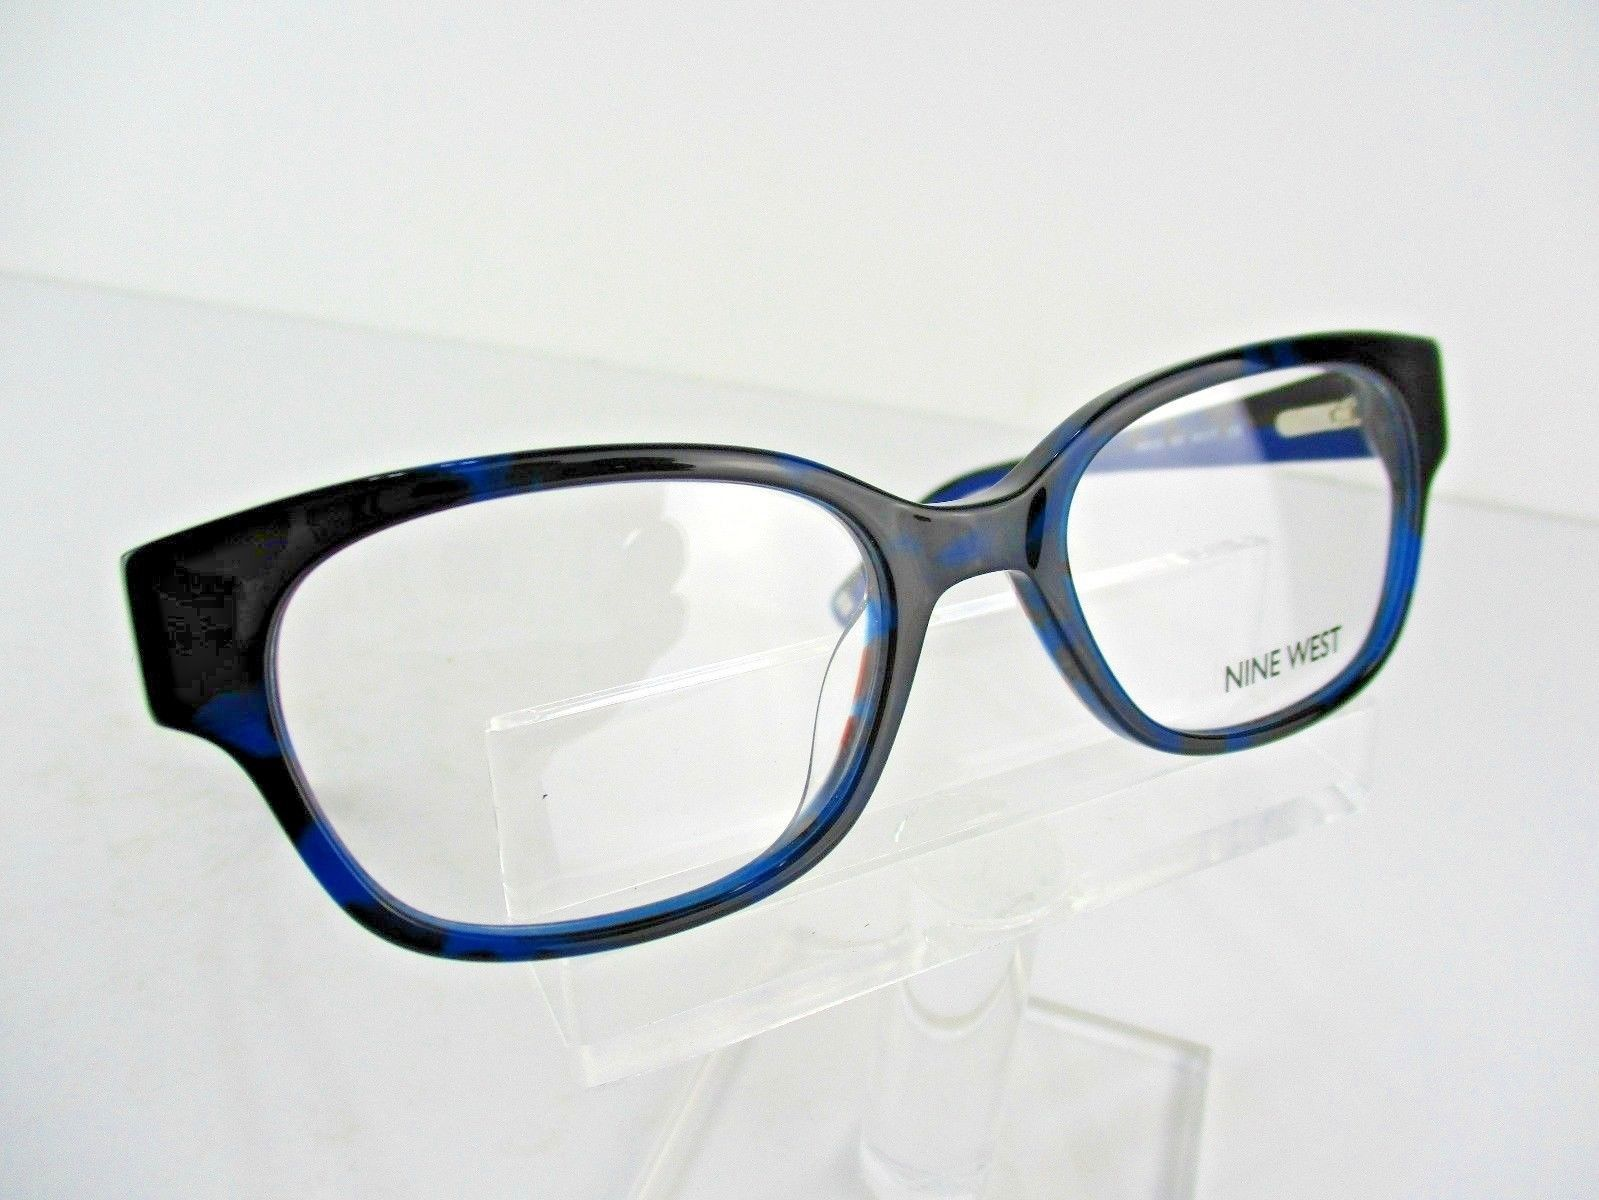 6a7309aa54 Nine West NW 5108 (428) Blue Tortoise 49 x and 50 similar items